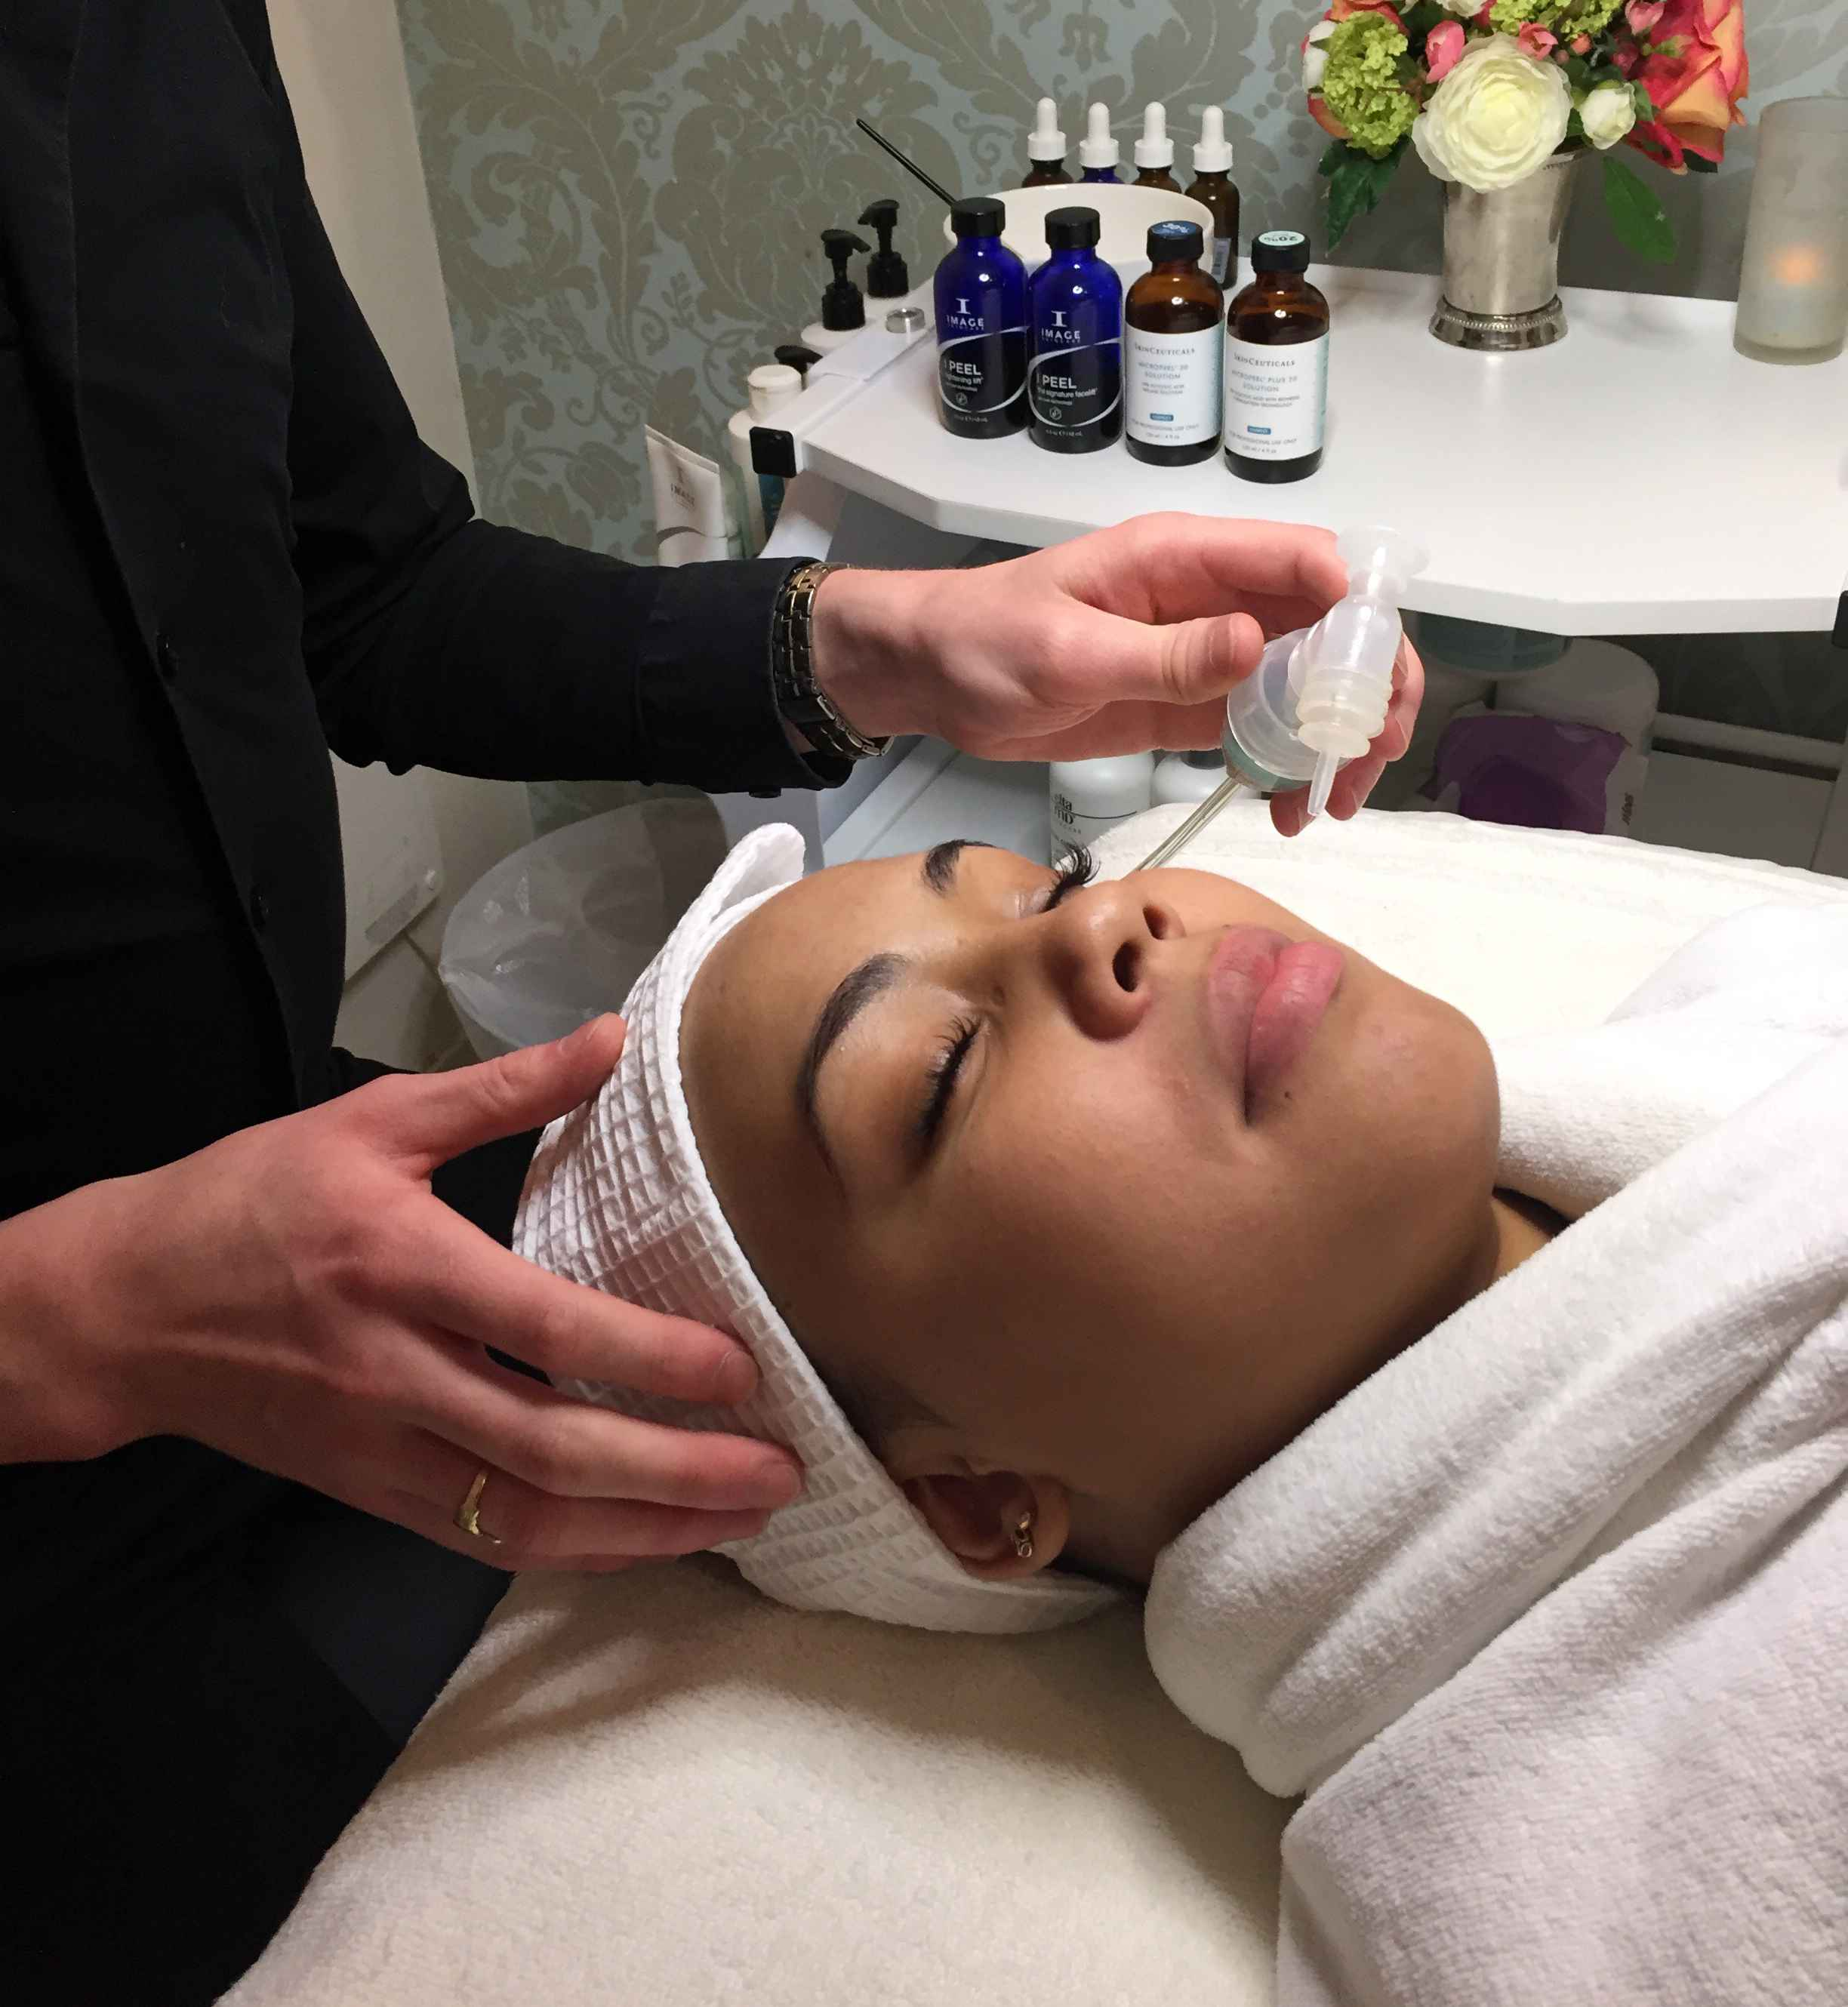 Oxygen treatment at Skin Bar NYC